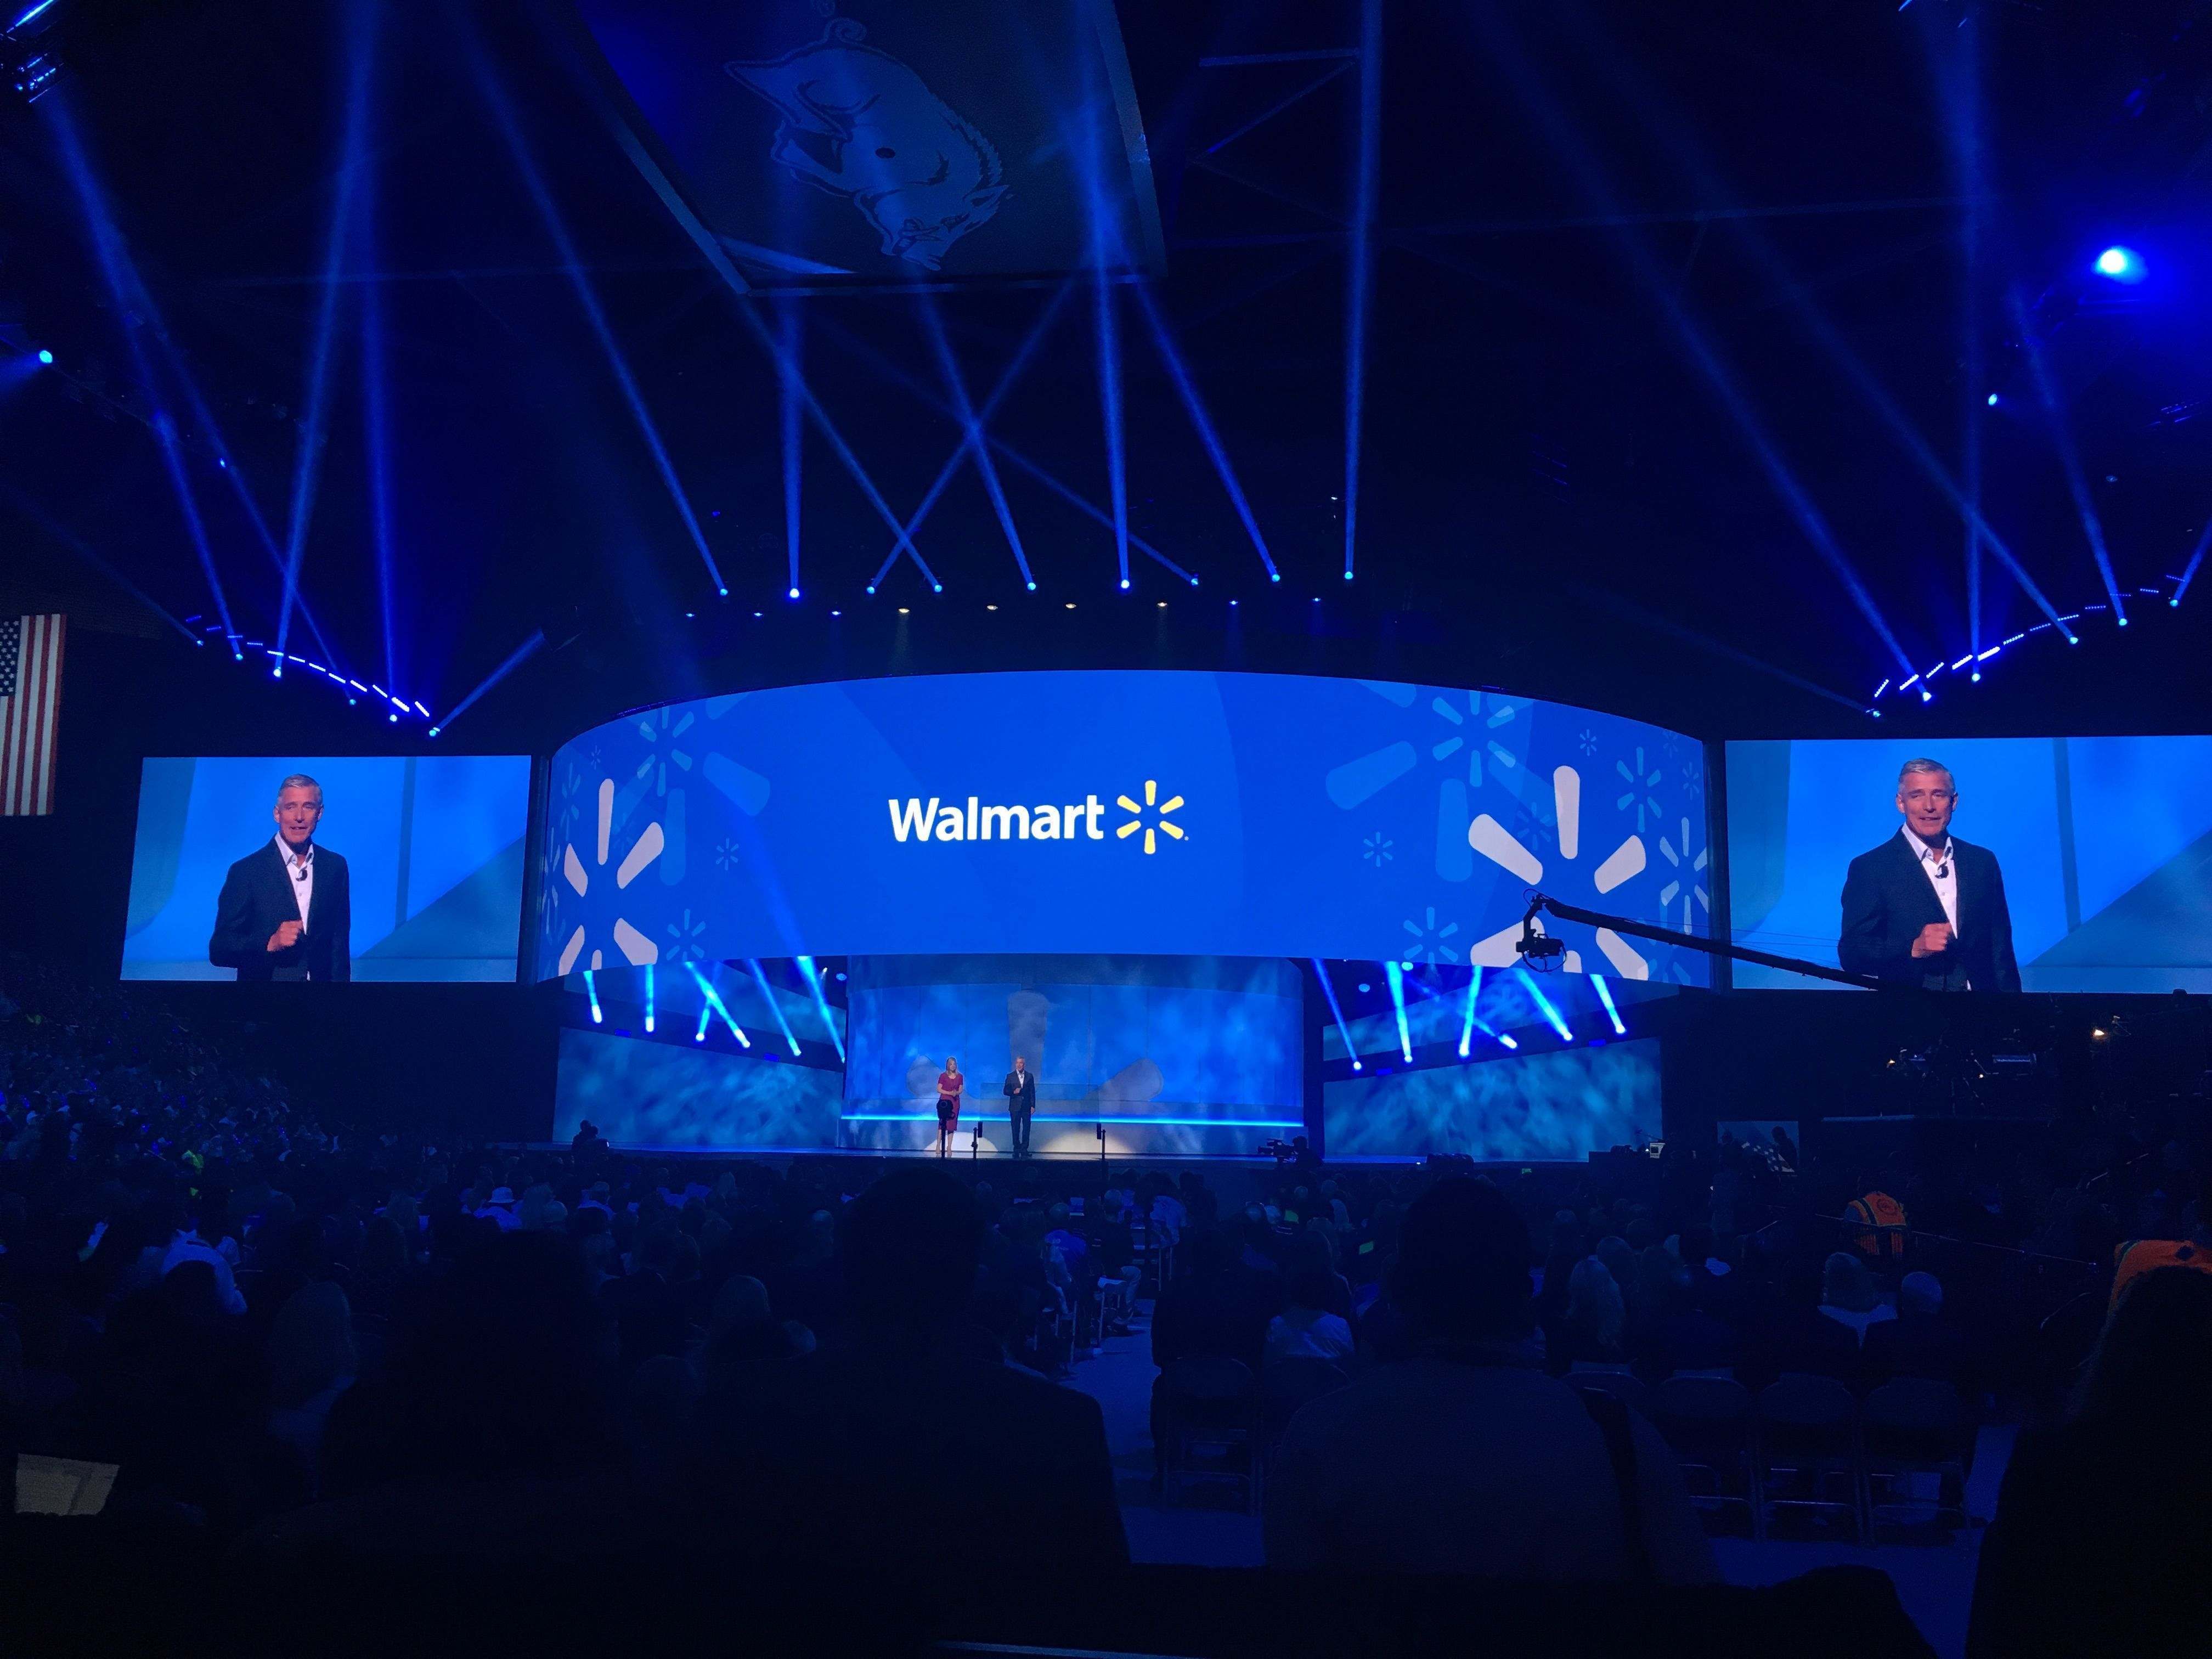 The 2017 Review of ROE Projects on Corporate Events Walmart